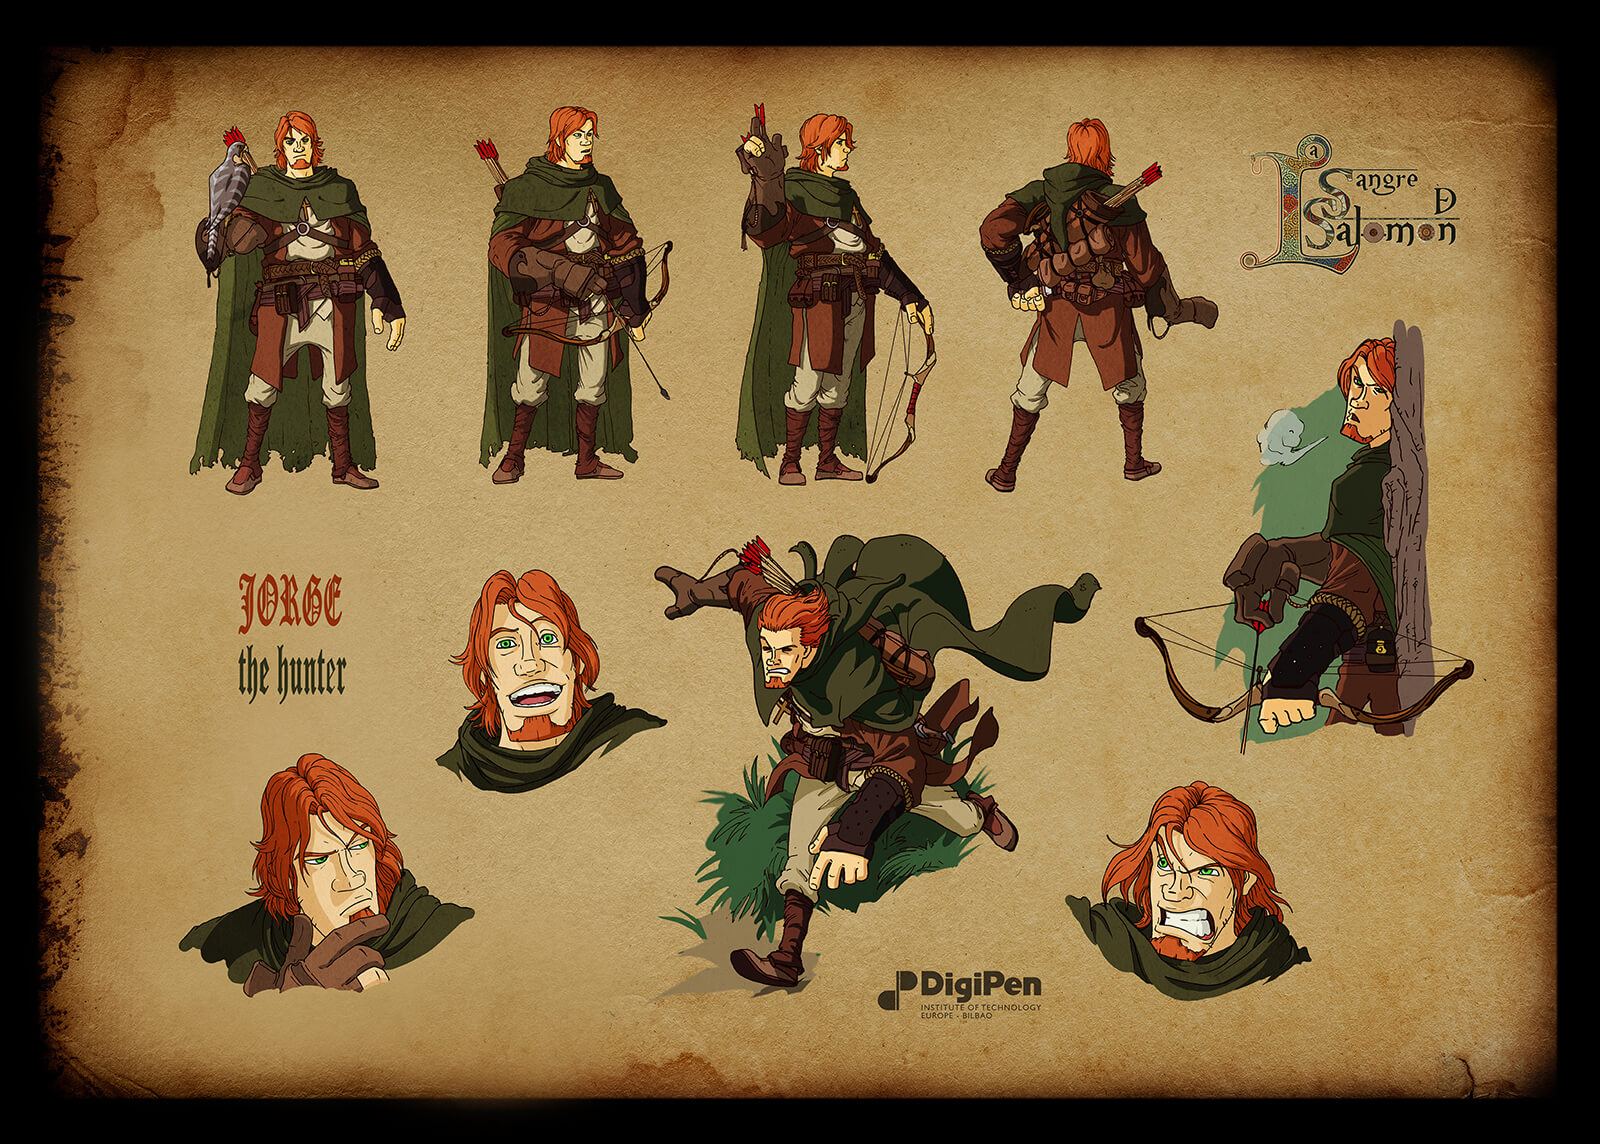 Concept paintings for a red-haired hunter in Sangre de Salomon in various poses in a green coat and bow and arrow